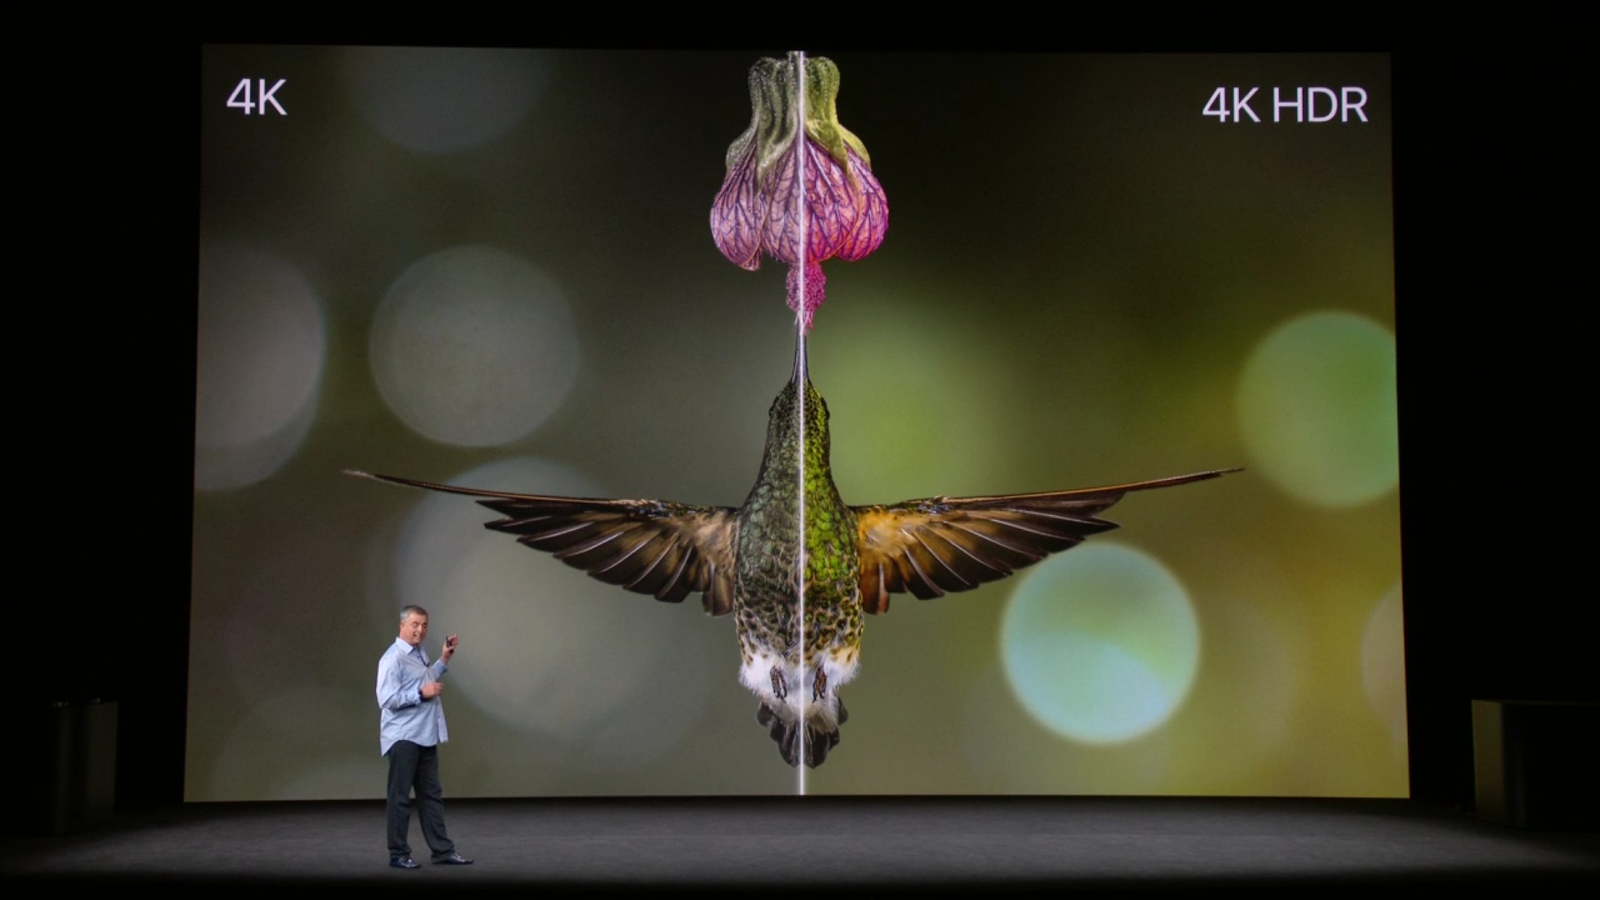 Apple has just launched Apple TV with new 4K video quality support which offers a better and sharper quality content. Apple TV is integrated A10X chip